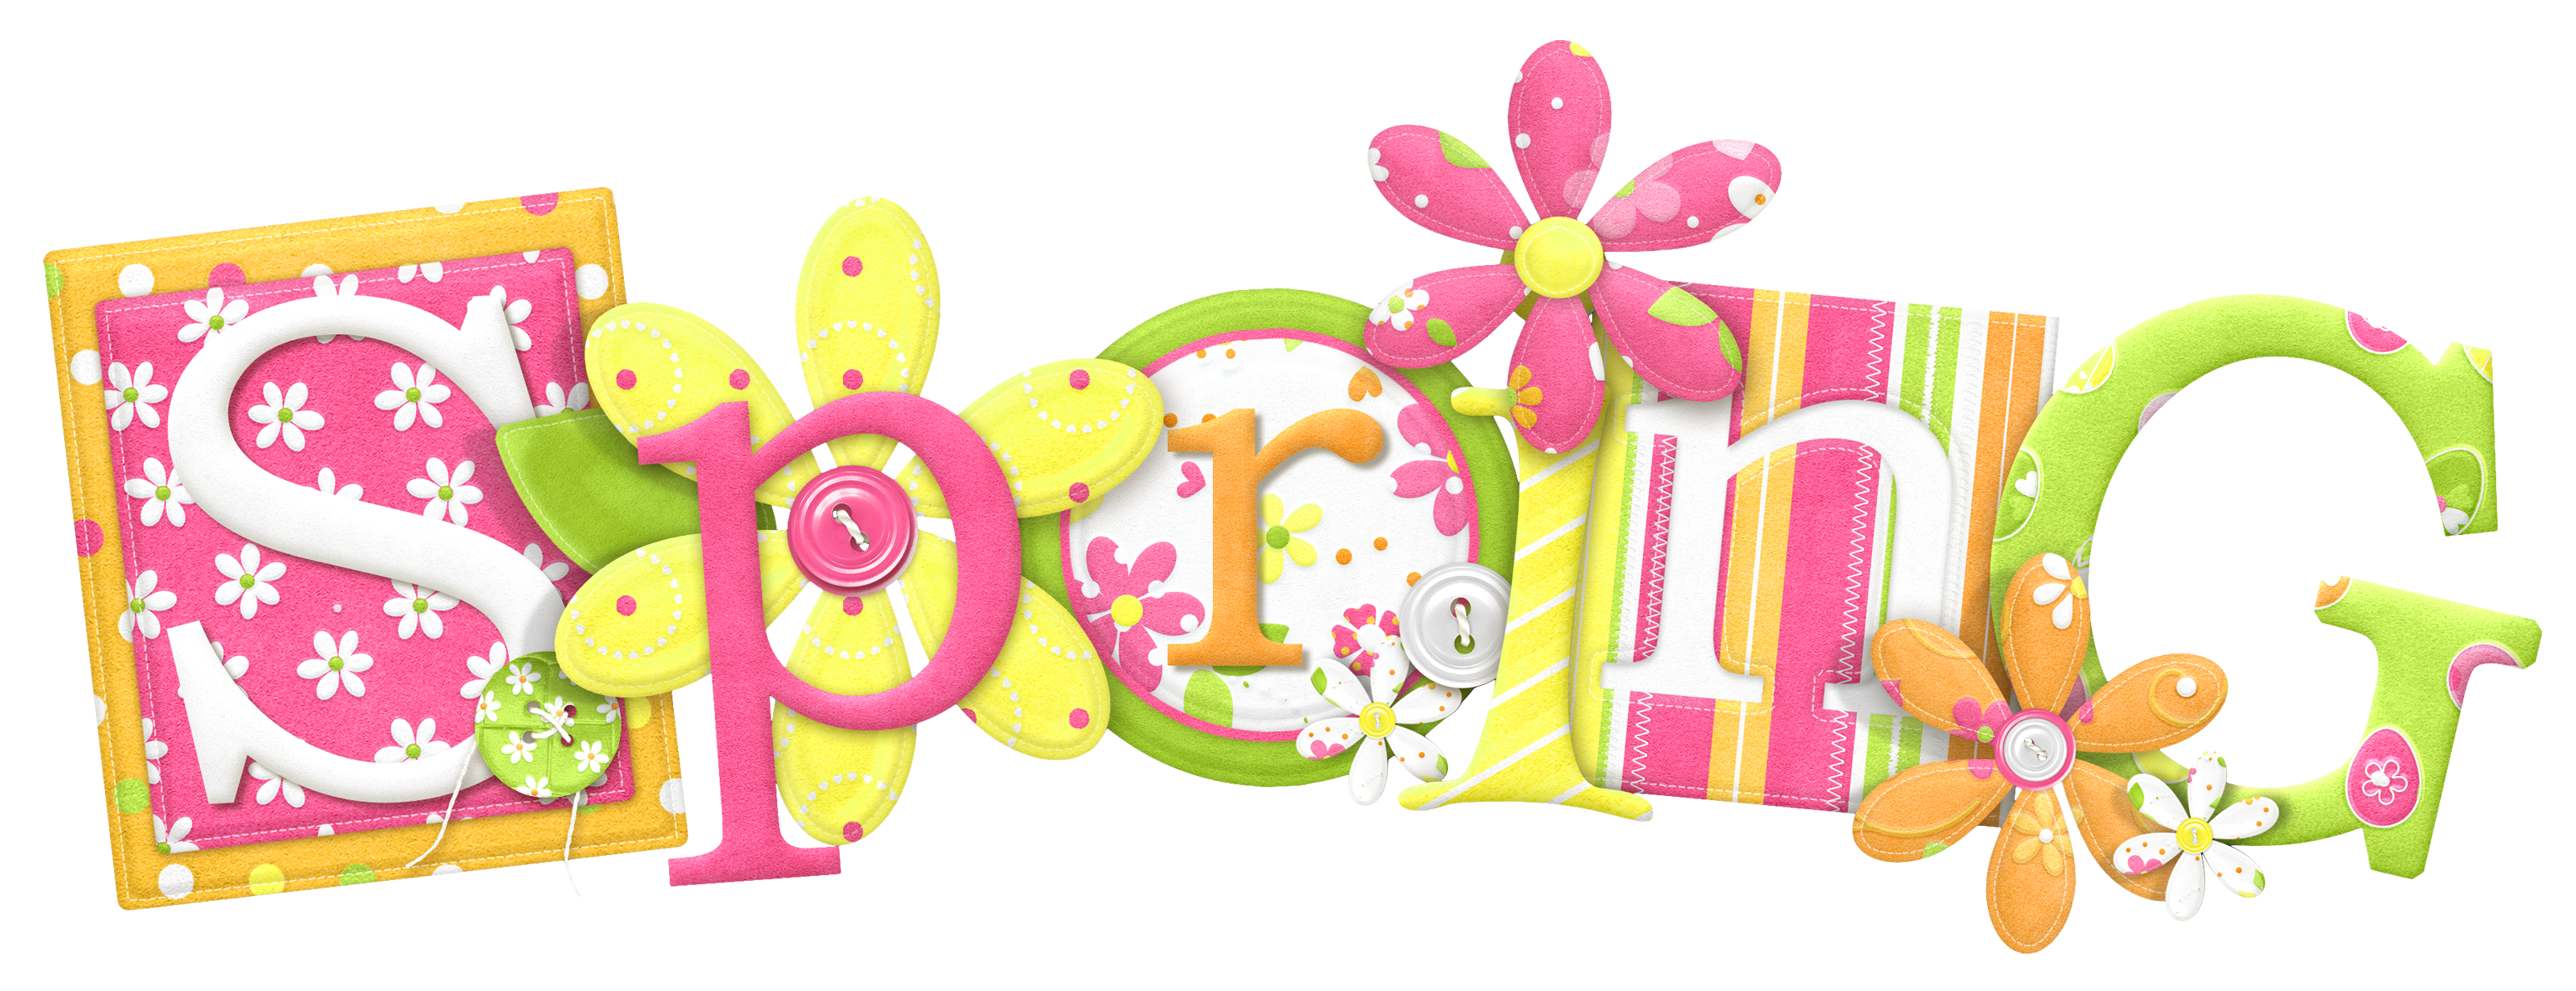 Spring clip art free clipart image 2